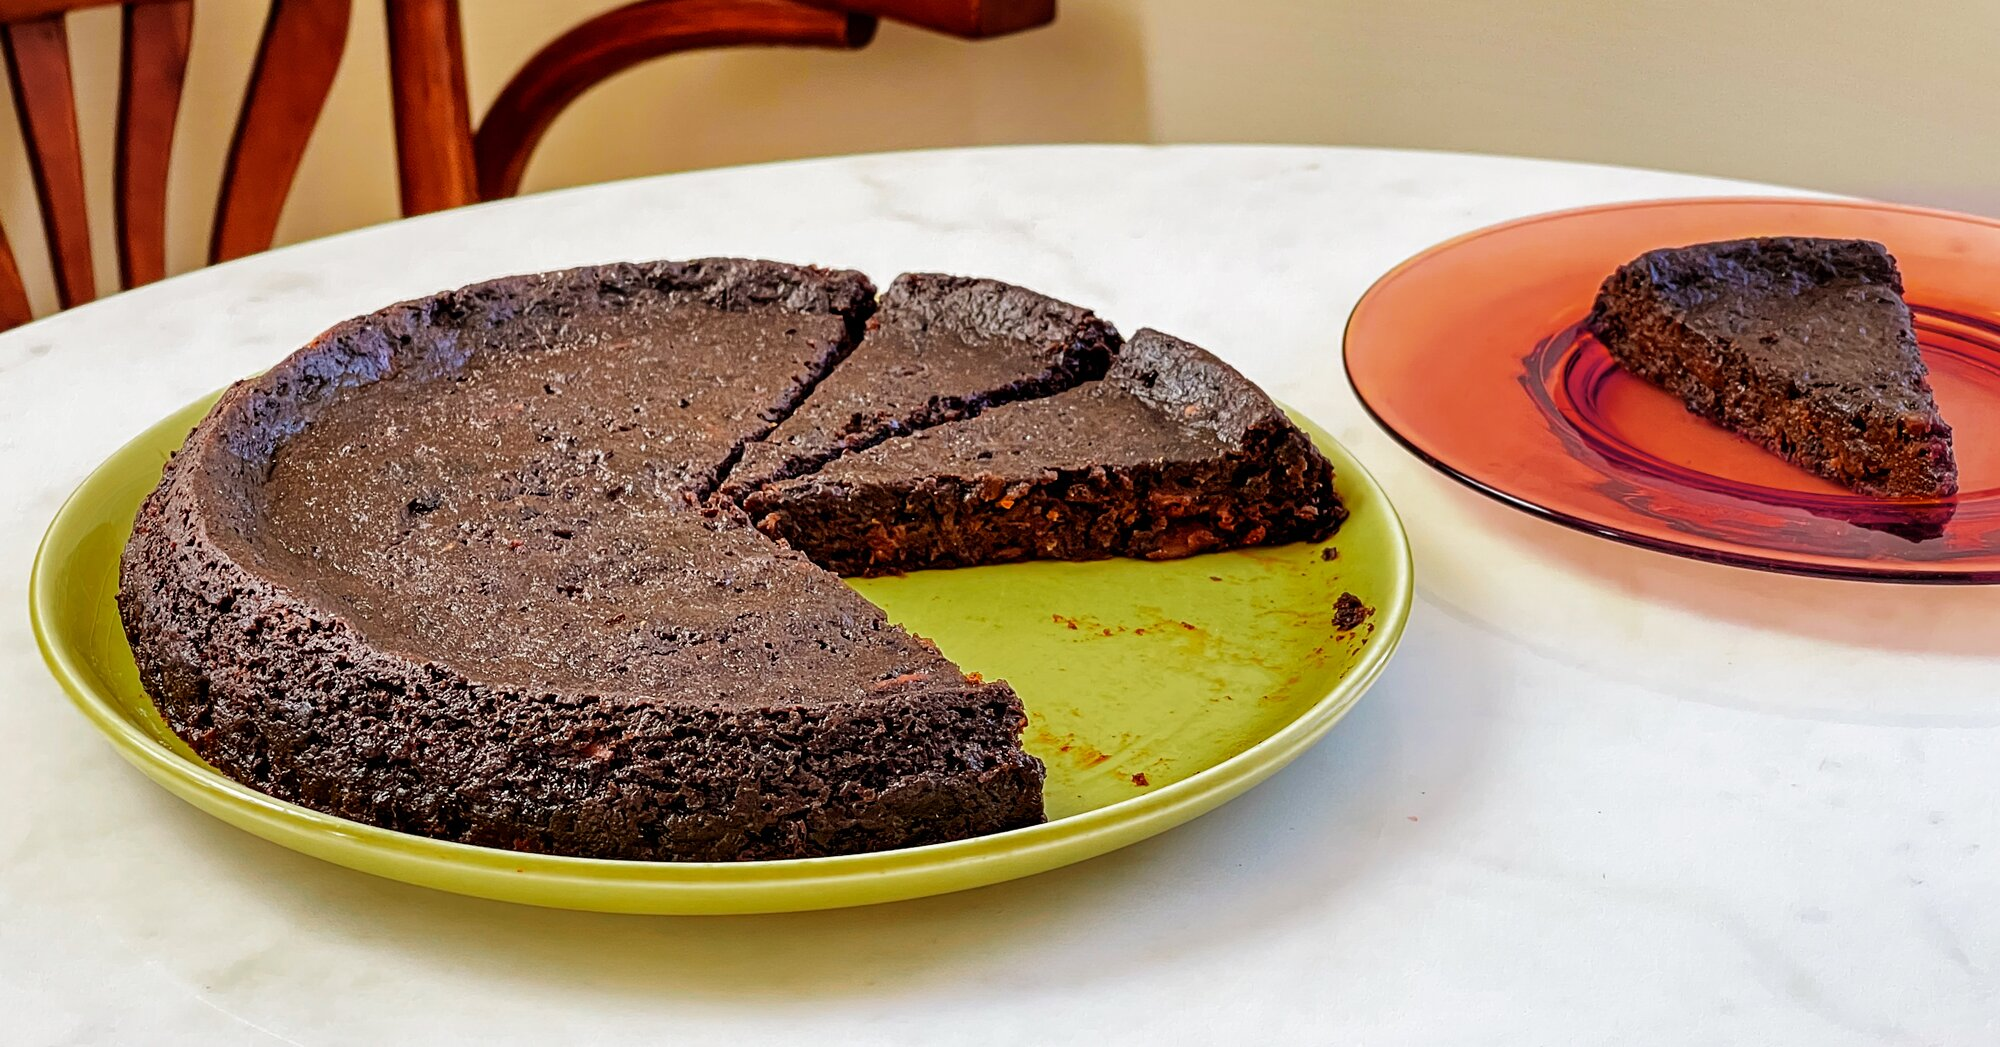 Patiently Wrought in Rum and Tradition, Black Cake Is a Triumph